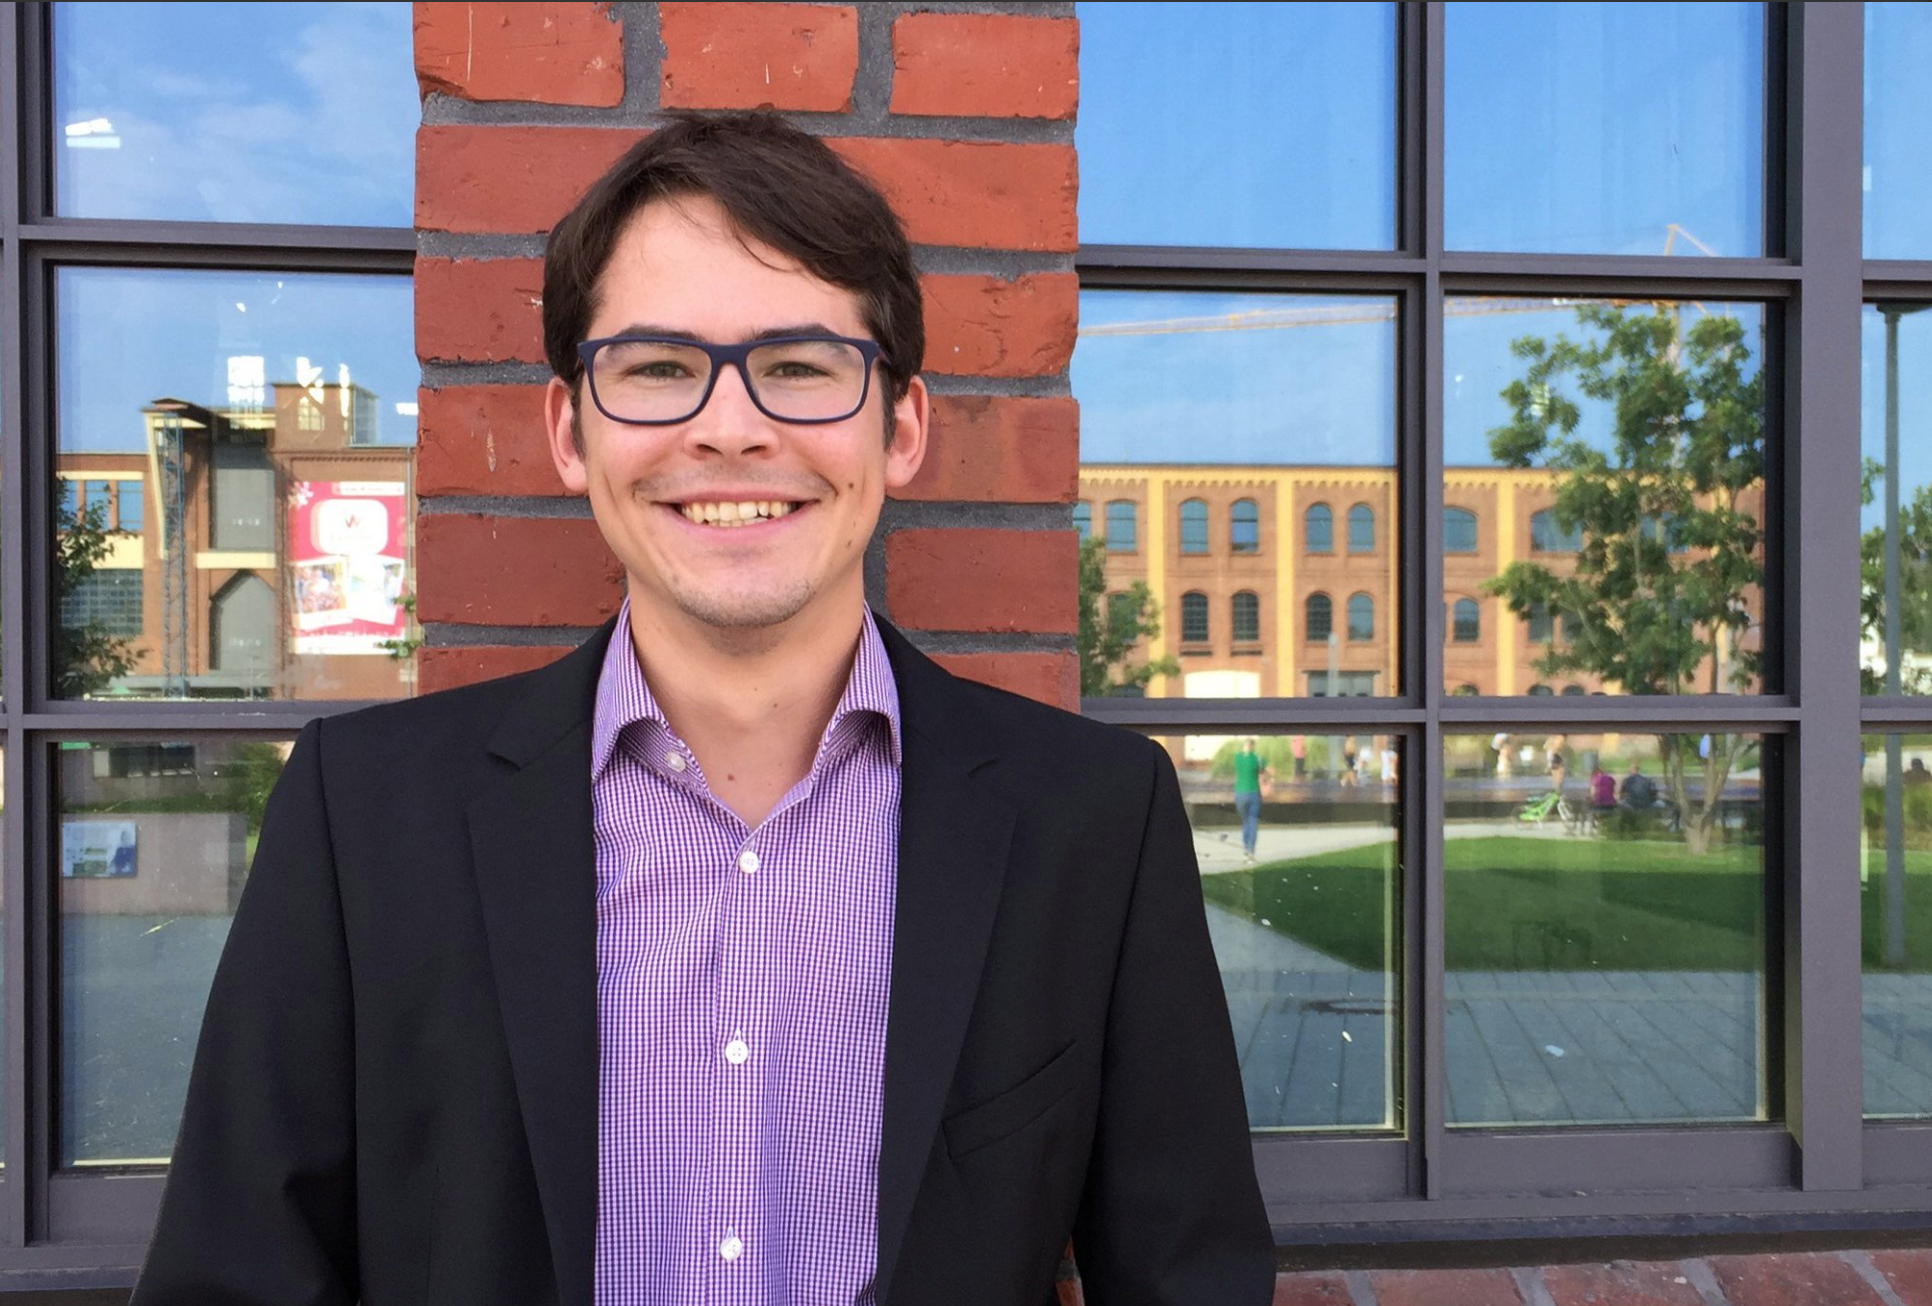 Welcome Stefan! - 30/9/18Welcome Stefan Schlisske! Our new visiting student who joined us from KIT Karlsruhe, Germany. His research interests include organic electronics and improving the printing of functional materials by controlling the physical and chemical surface properties of substrates.